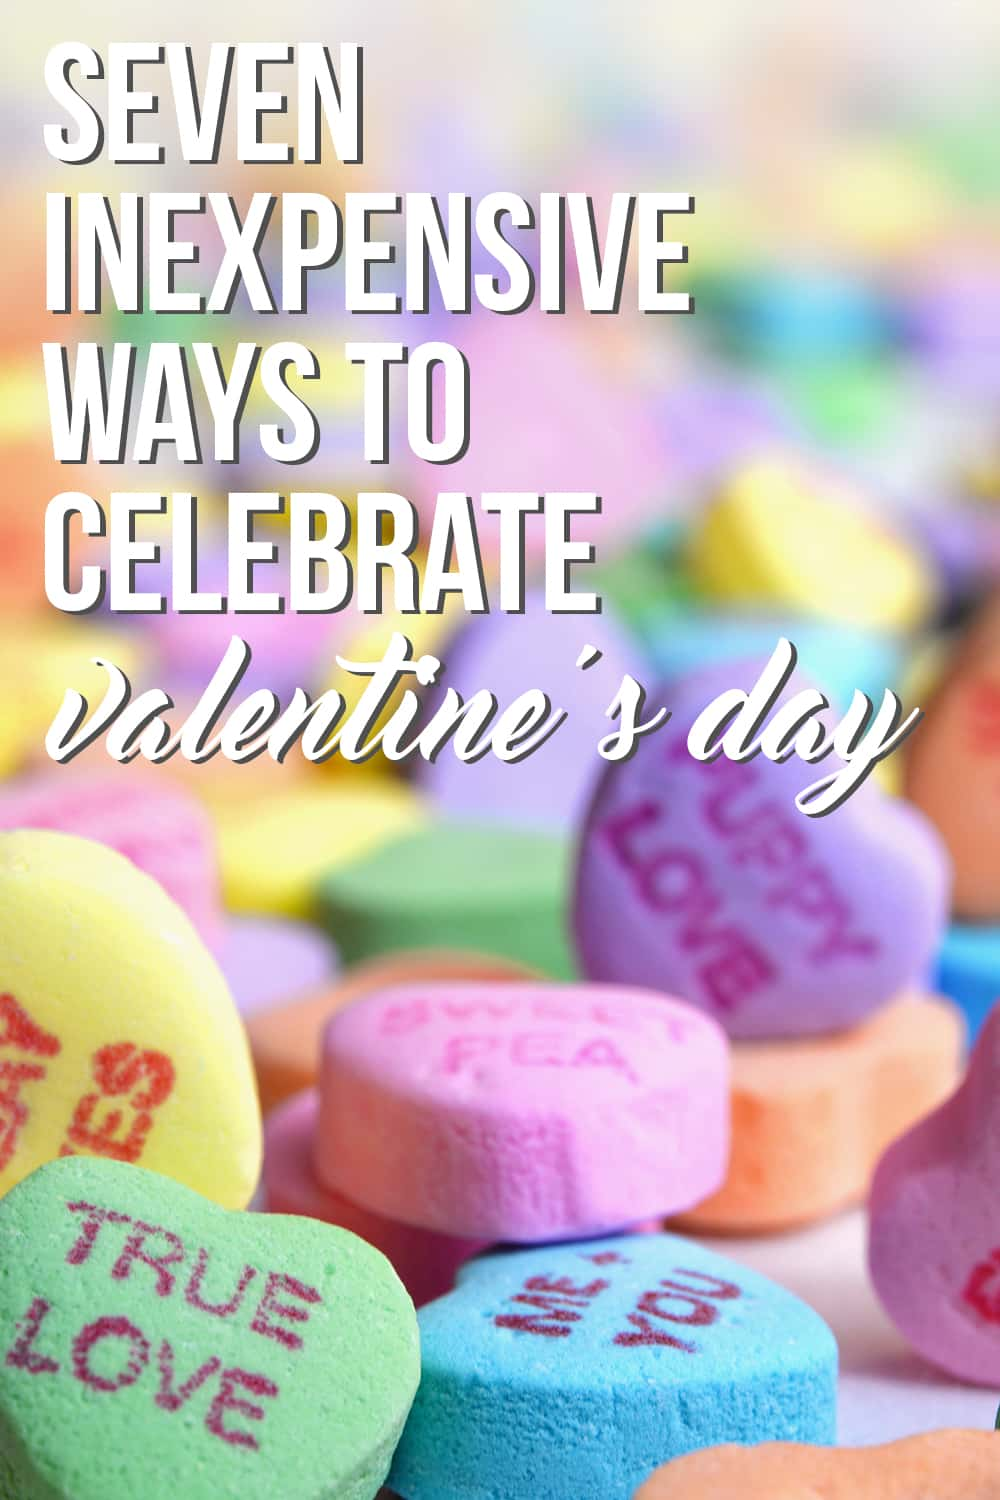 Want to celebrate this love-filled holiday without breaking the bank? Check out these Seven Inexpensive Ways to Celebrate Valentine's Day!